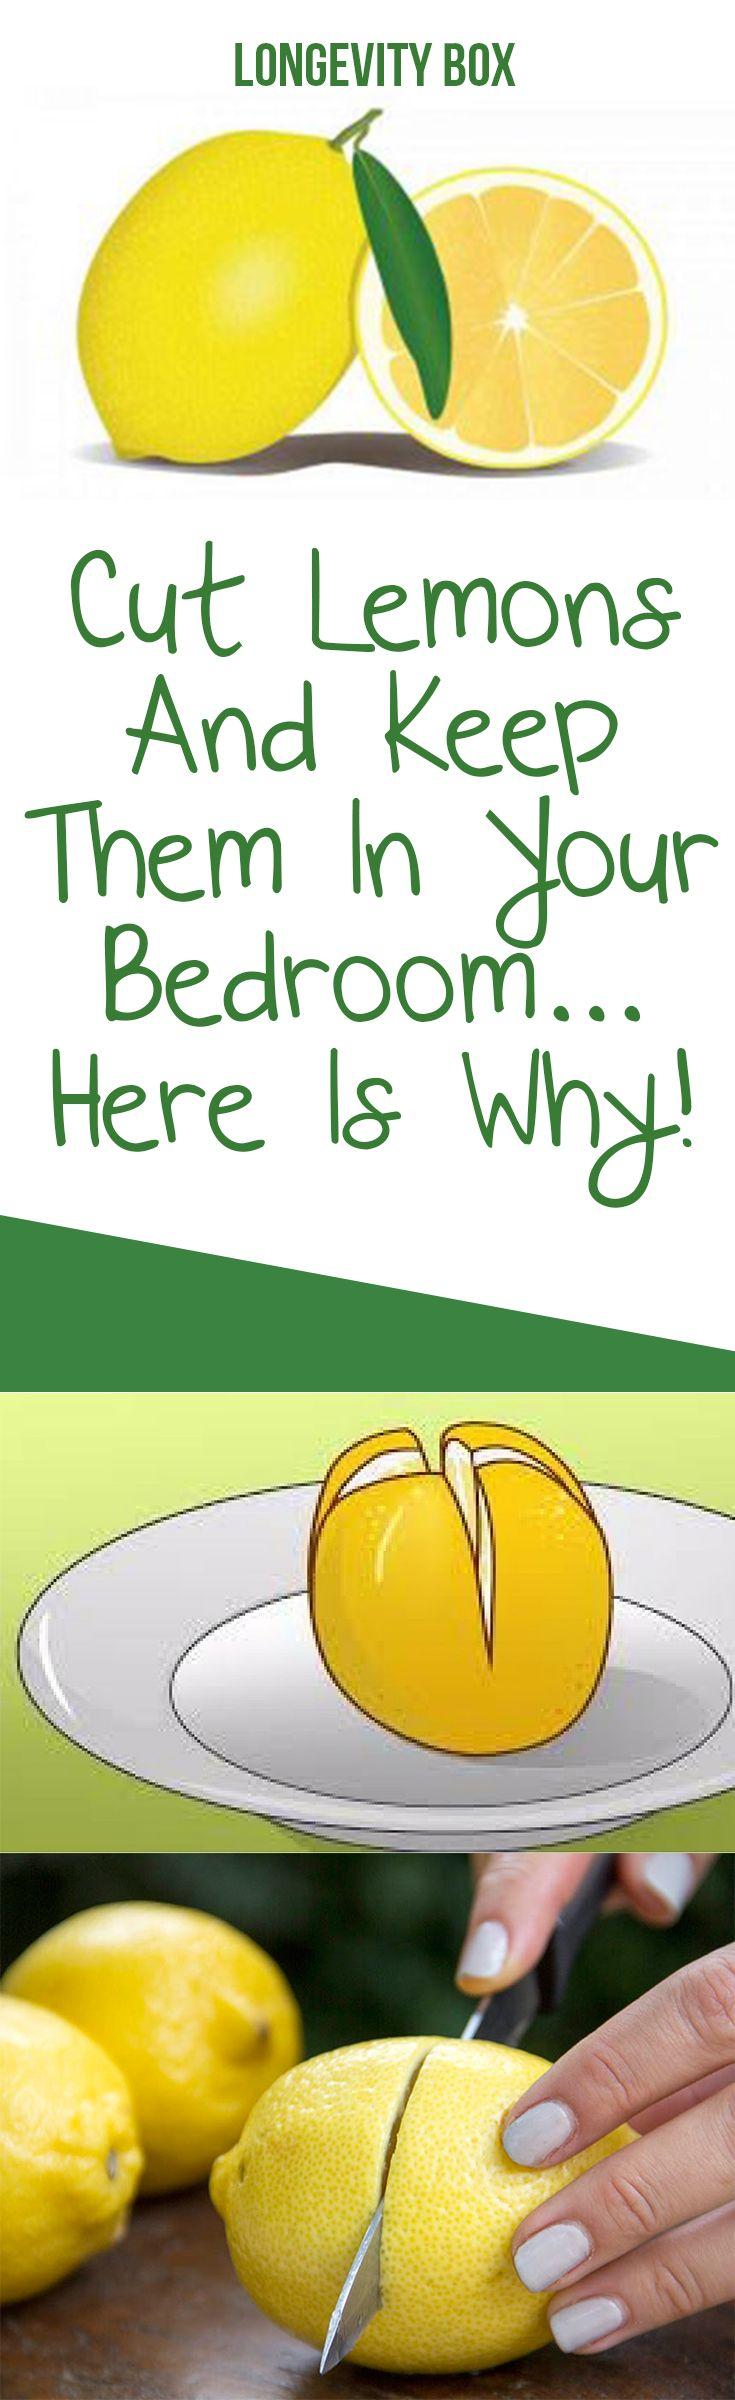 Cut lemons and keep them in your bedroom